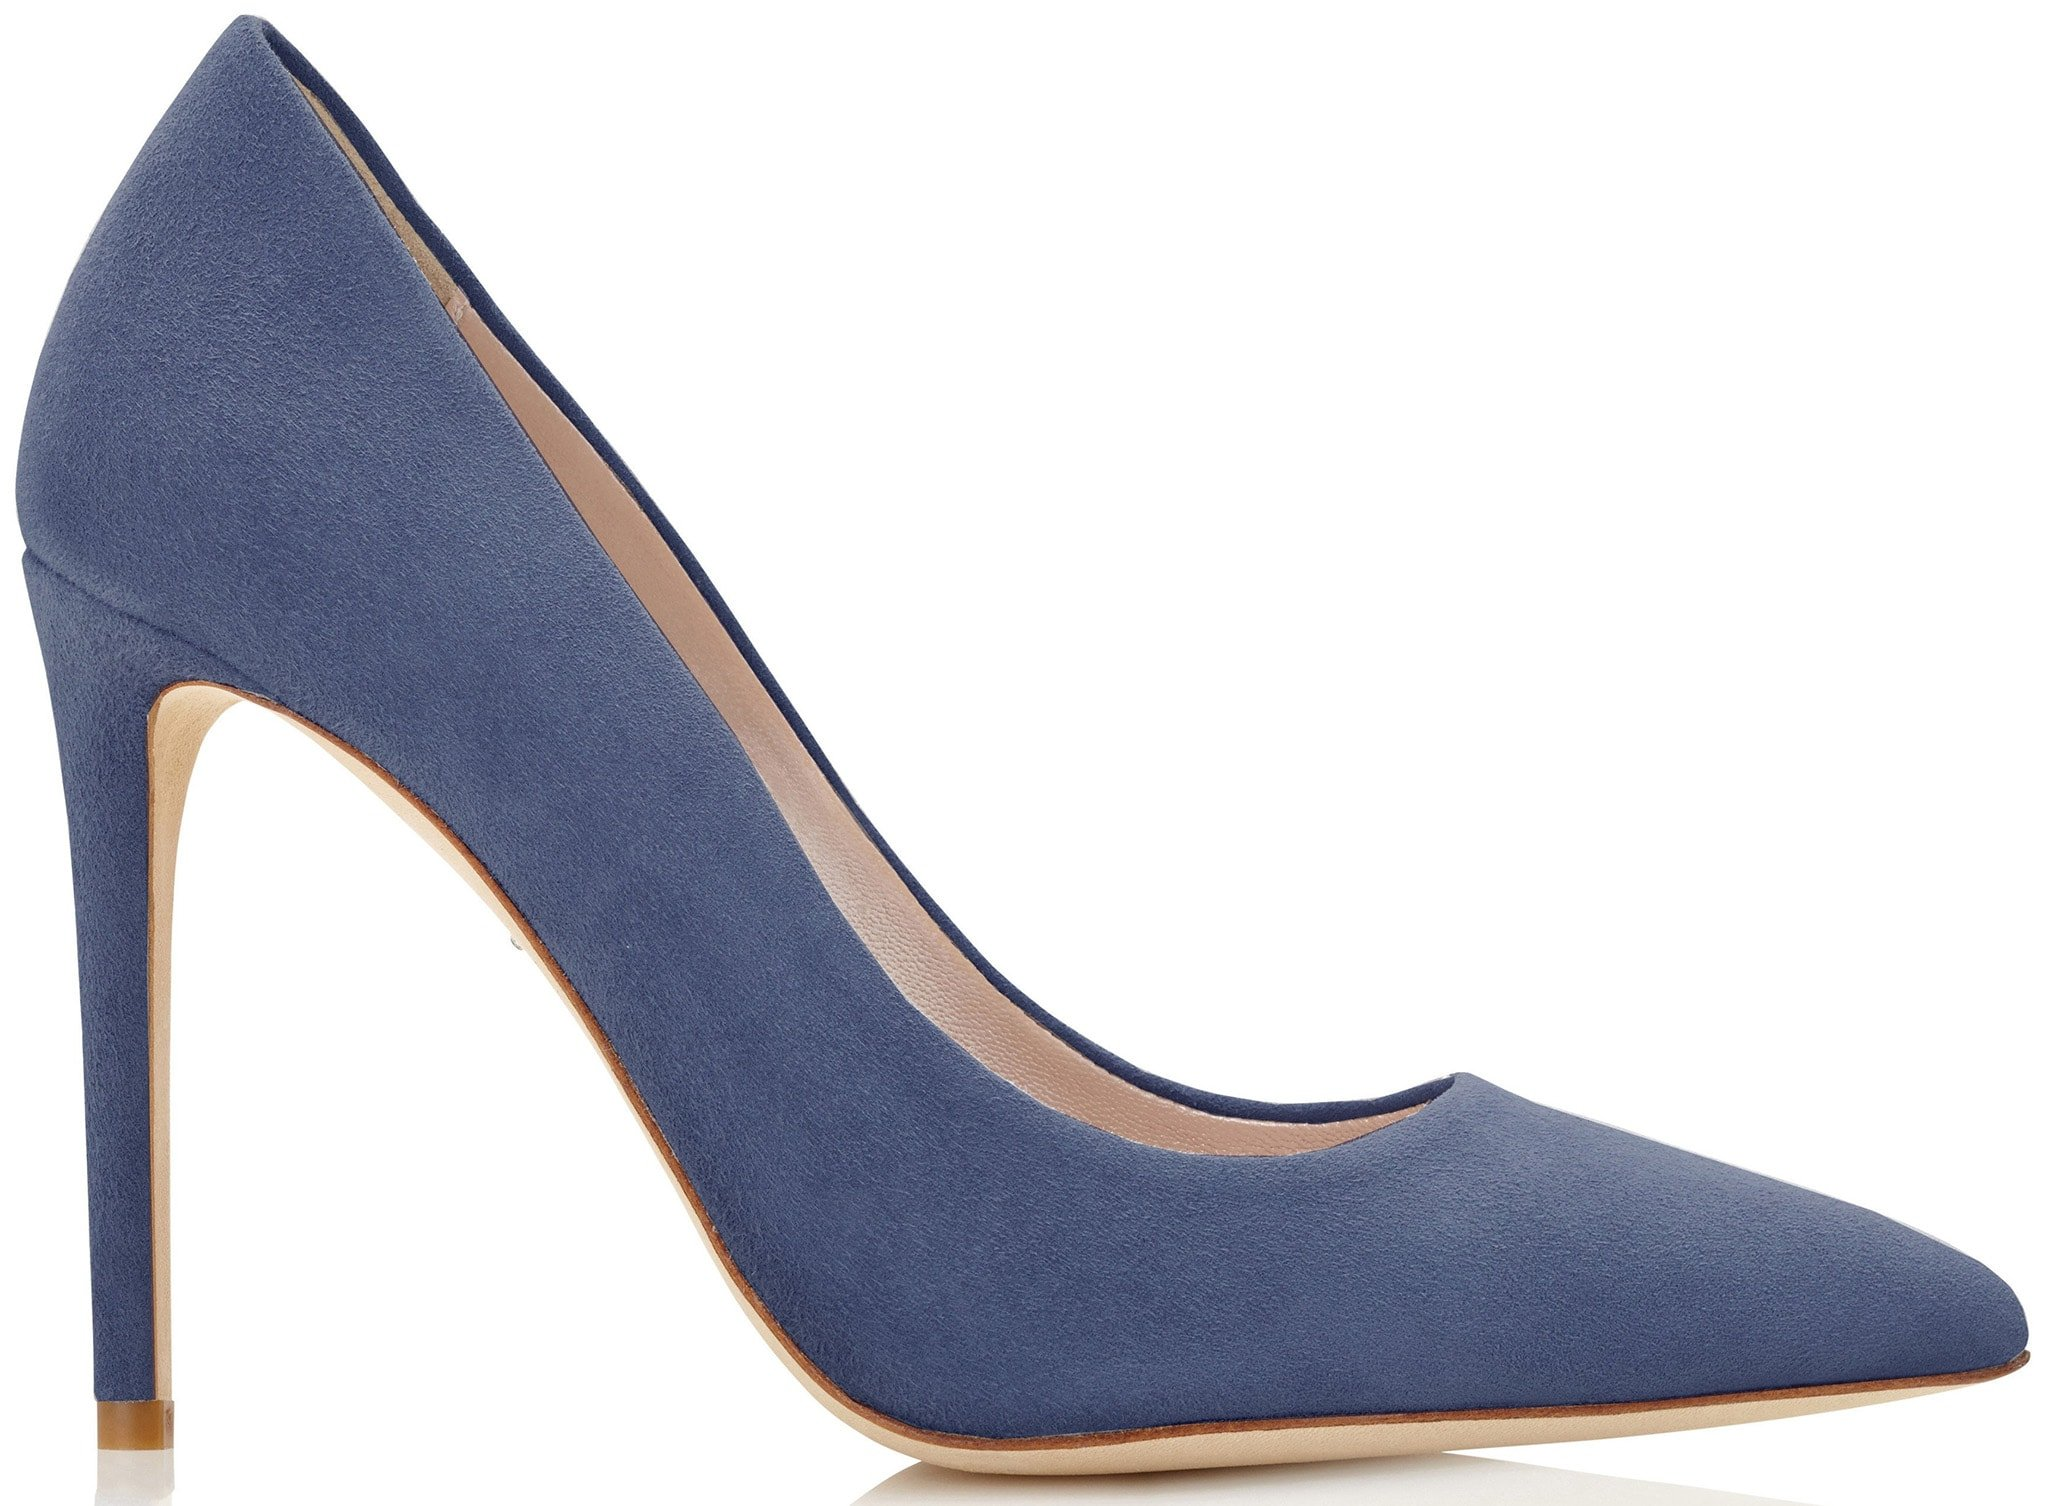 A classic, stylish pointed-toe shoe done in summery blue-gray suede with flattering straight heels